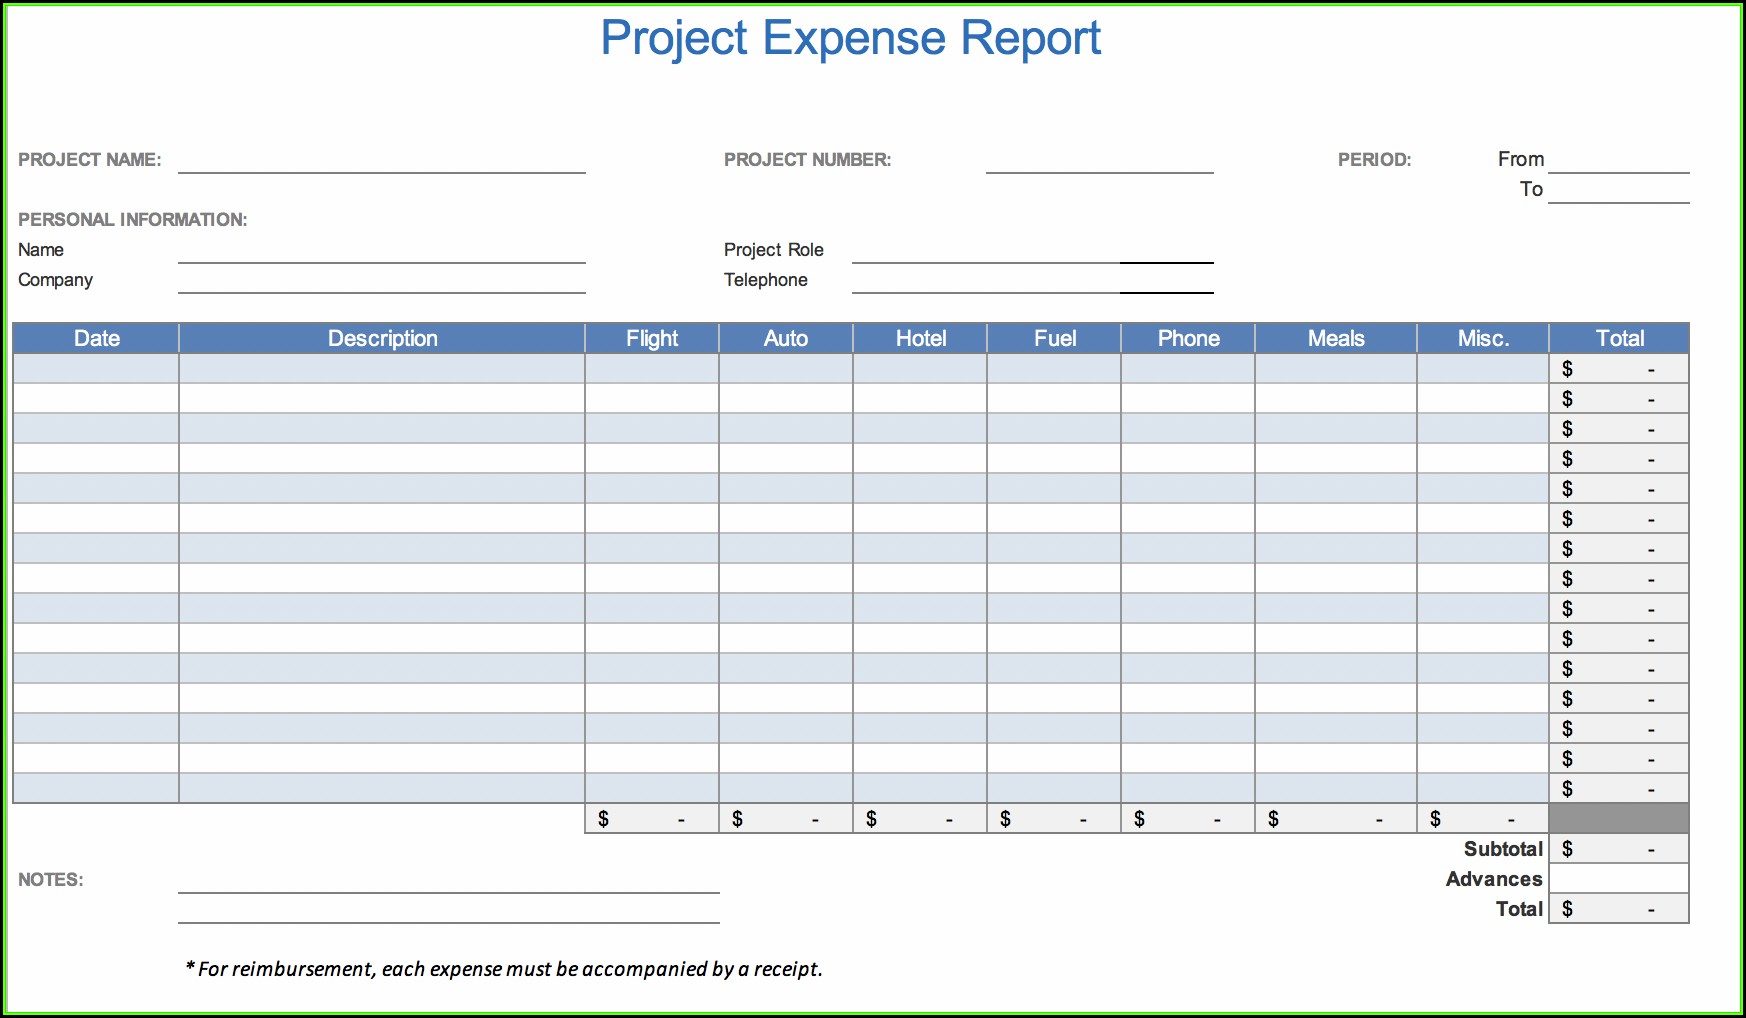 Travel Expense Report Template.xls